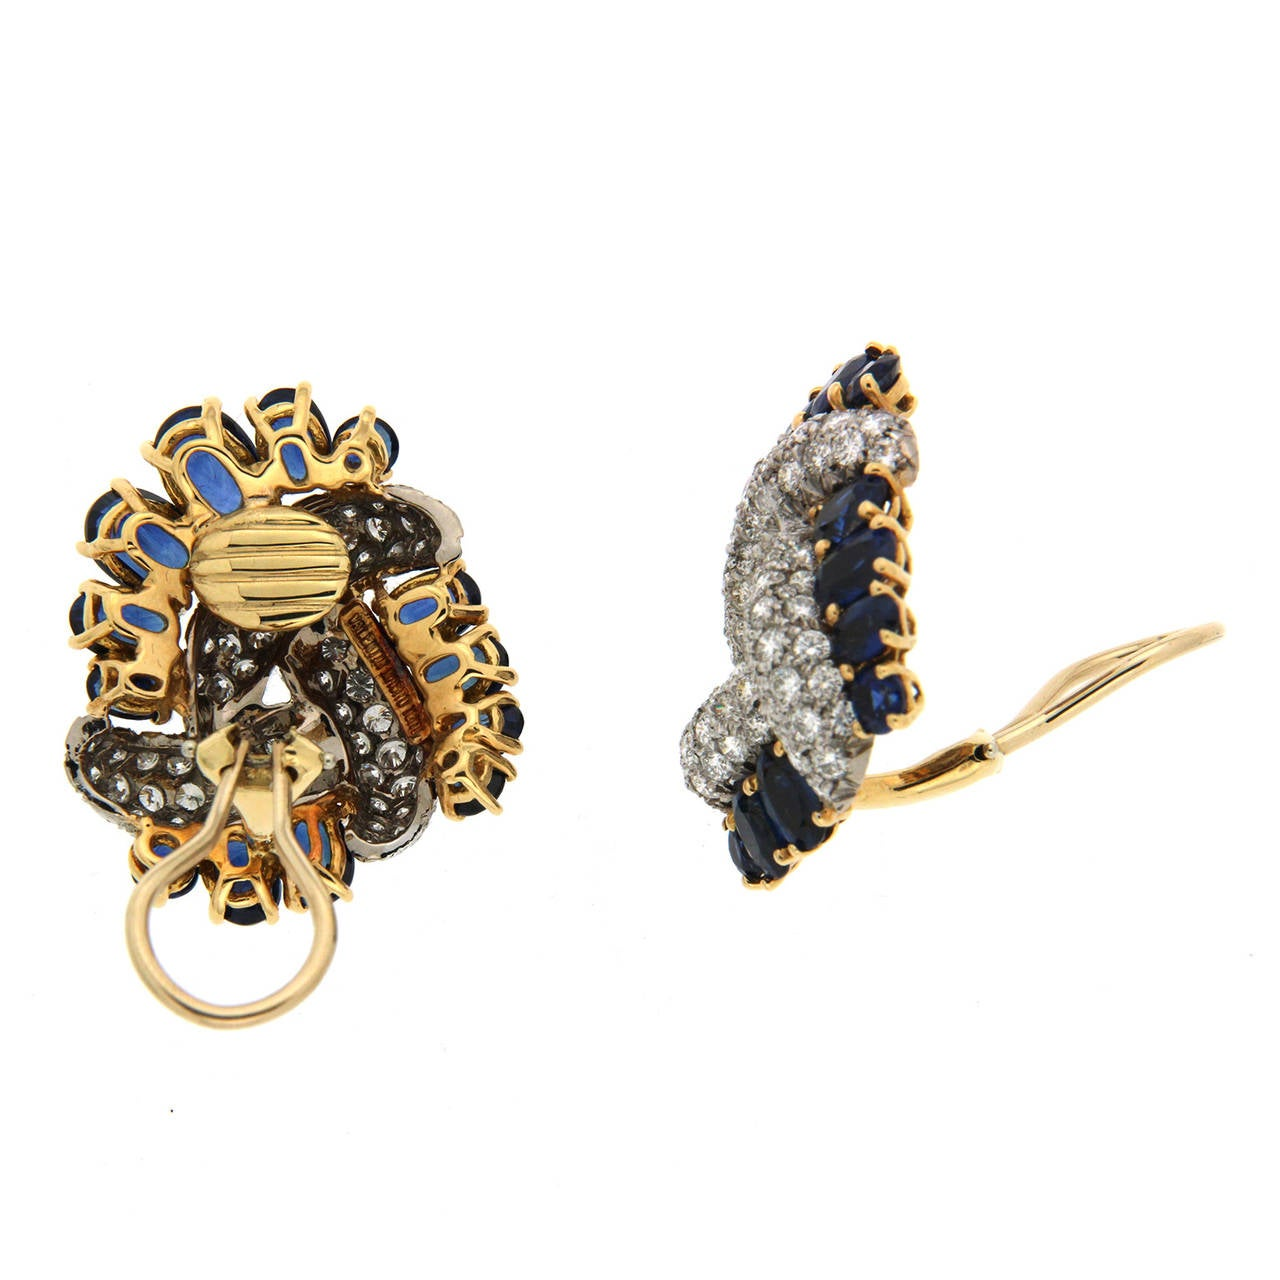 Triple Swirl Earrings with Sapphires and Diamonds 2